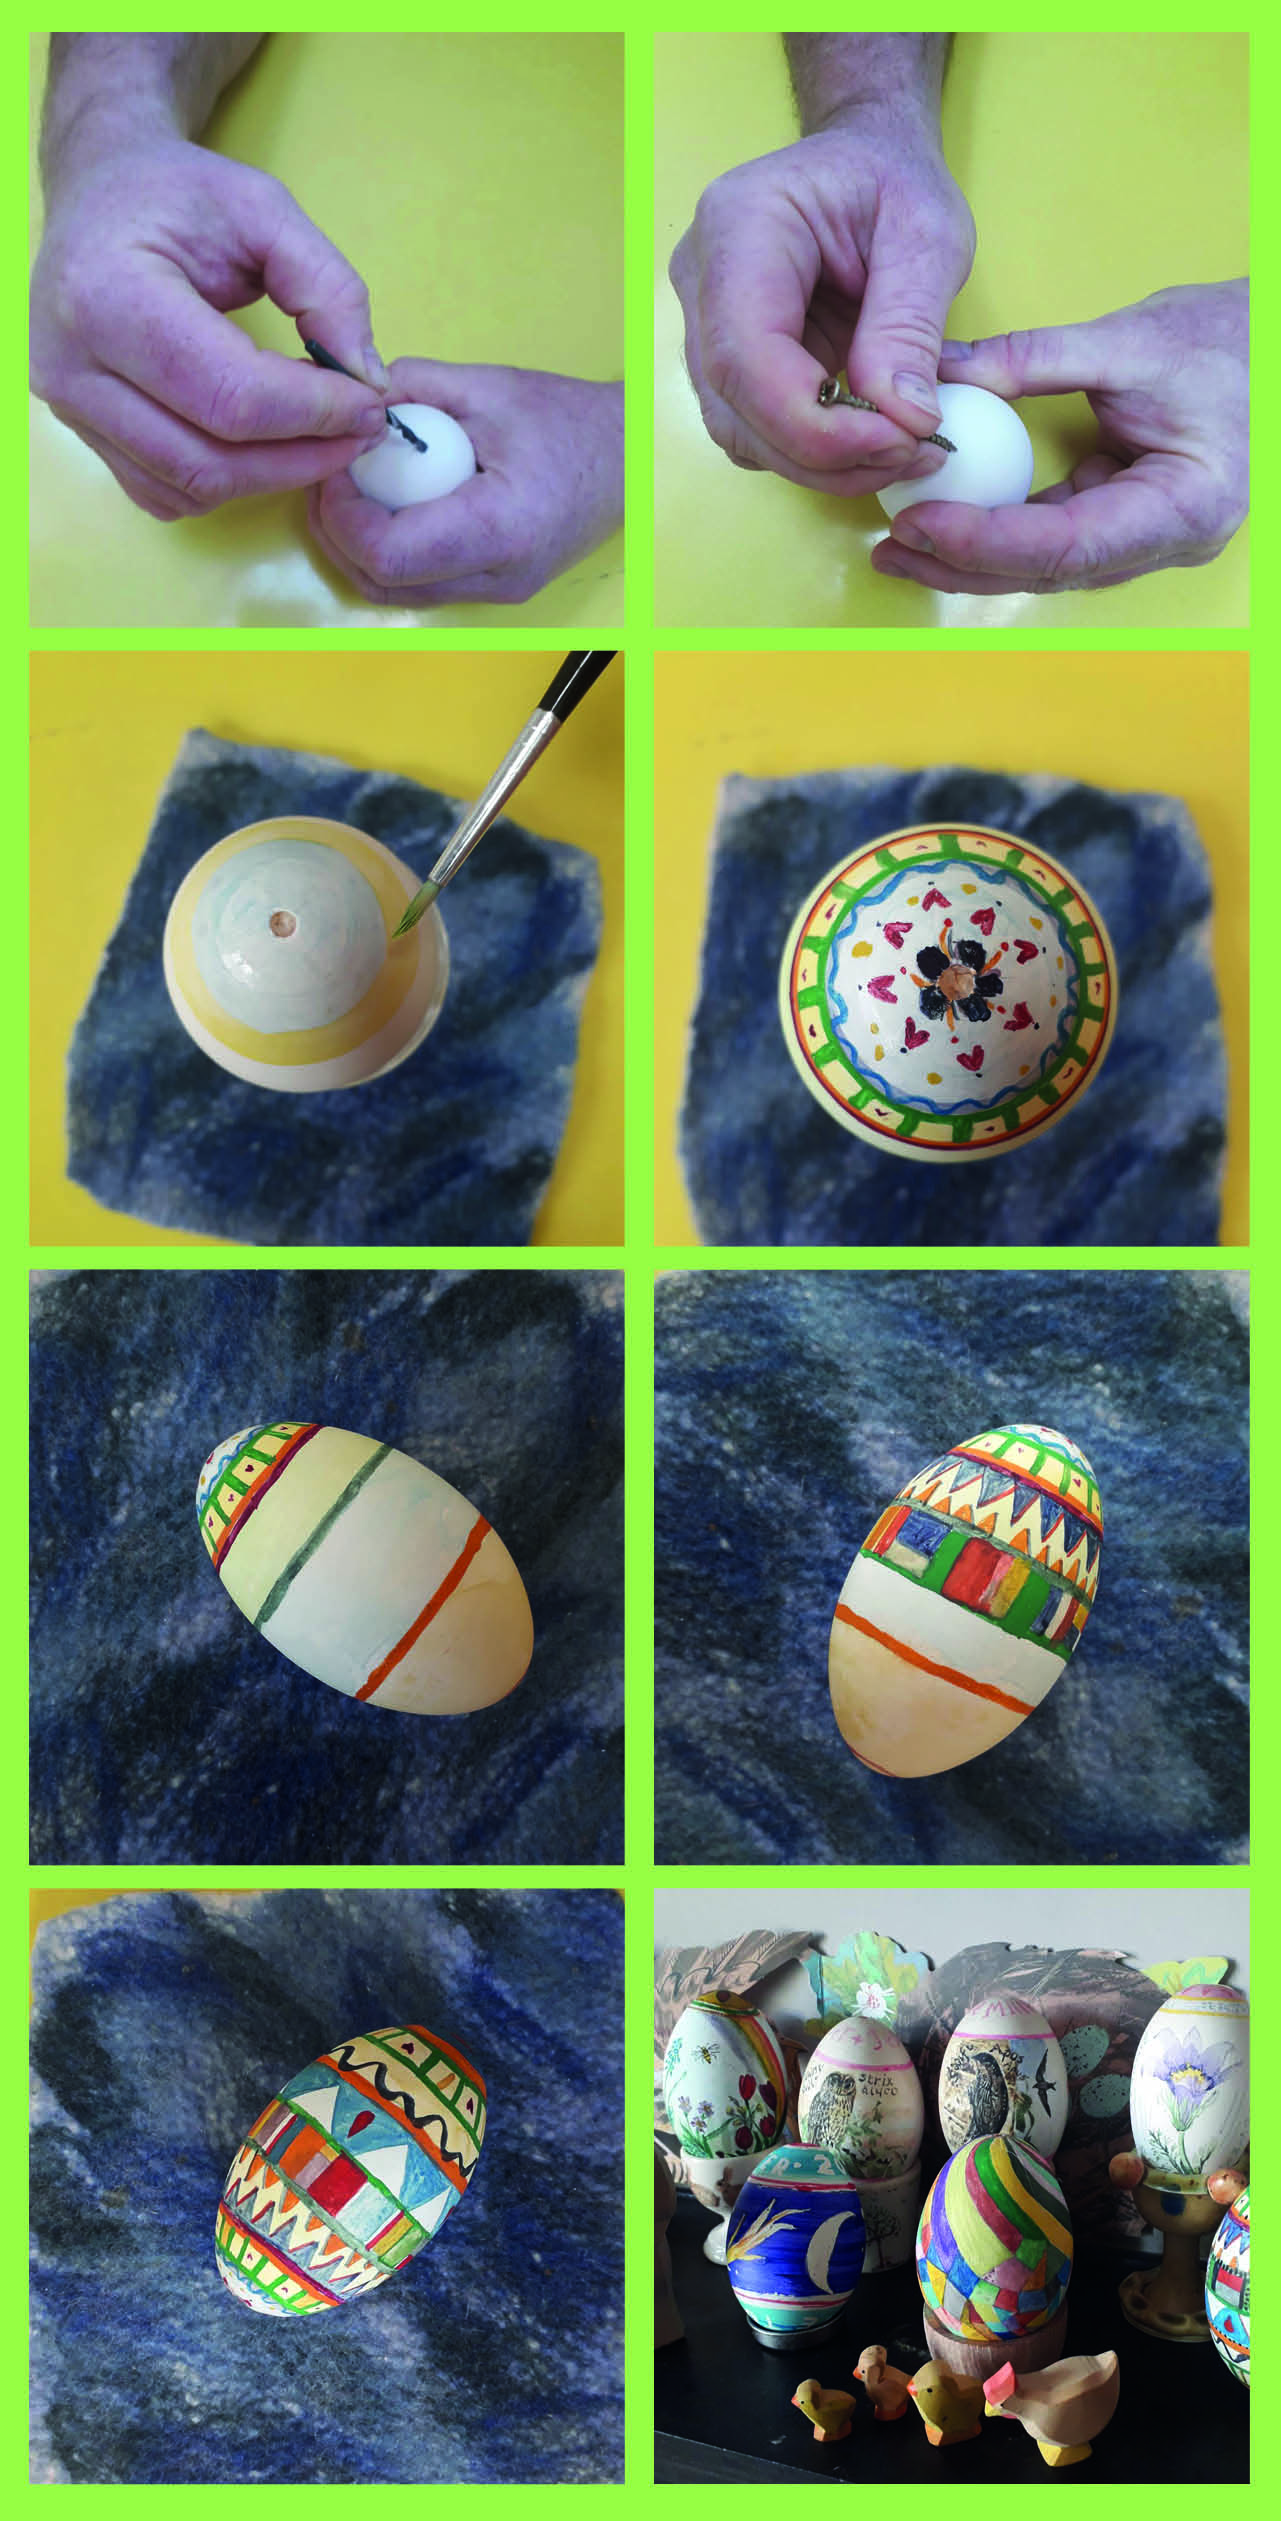 If you have decided to blow your egg, 1.Create a hole, top and bottom, of your egg to blow out the contents into a bowl. 2. Decorate the egg with patterns and stripes, decorate all around. 3. Wait for egg to dry and then display.